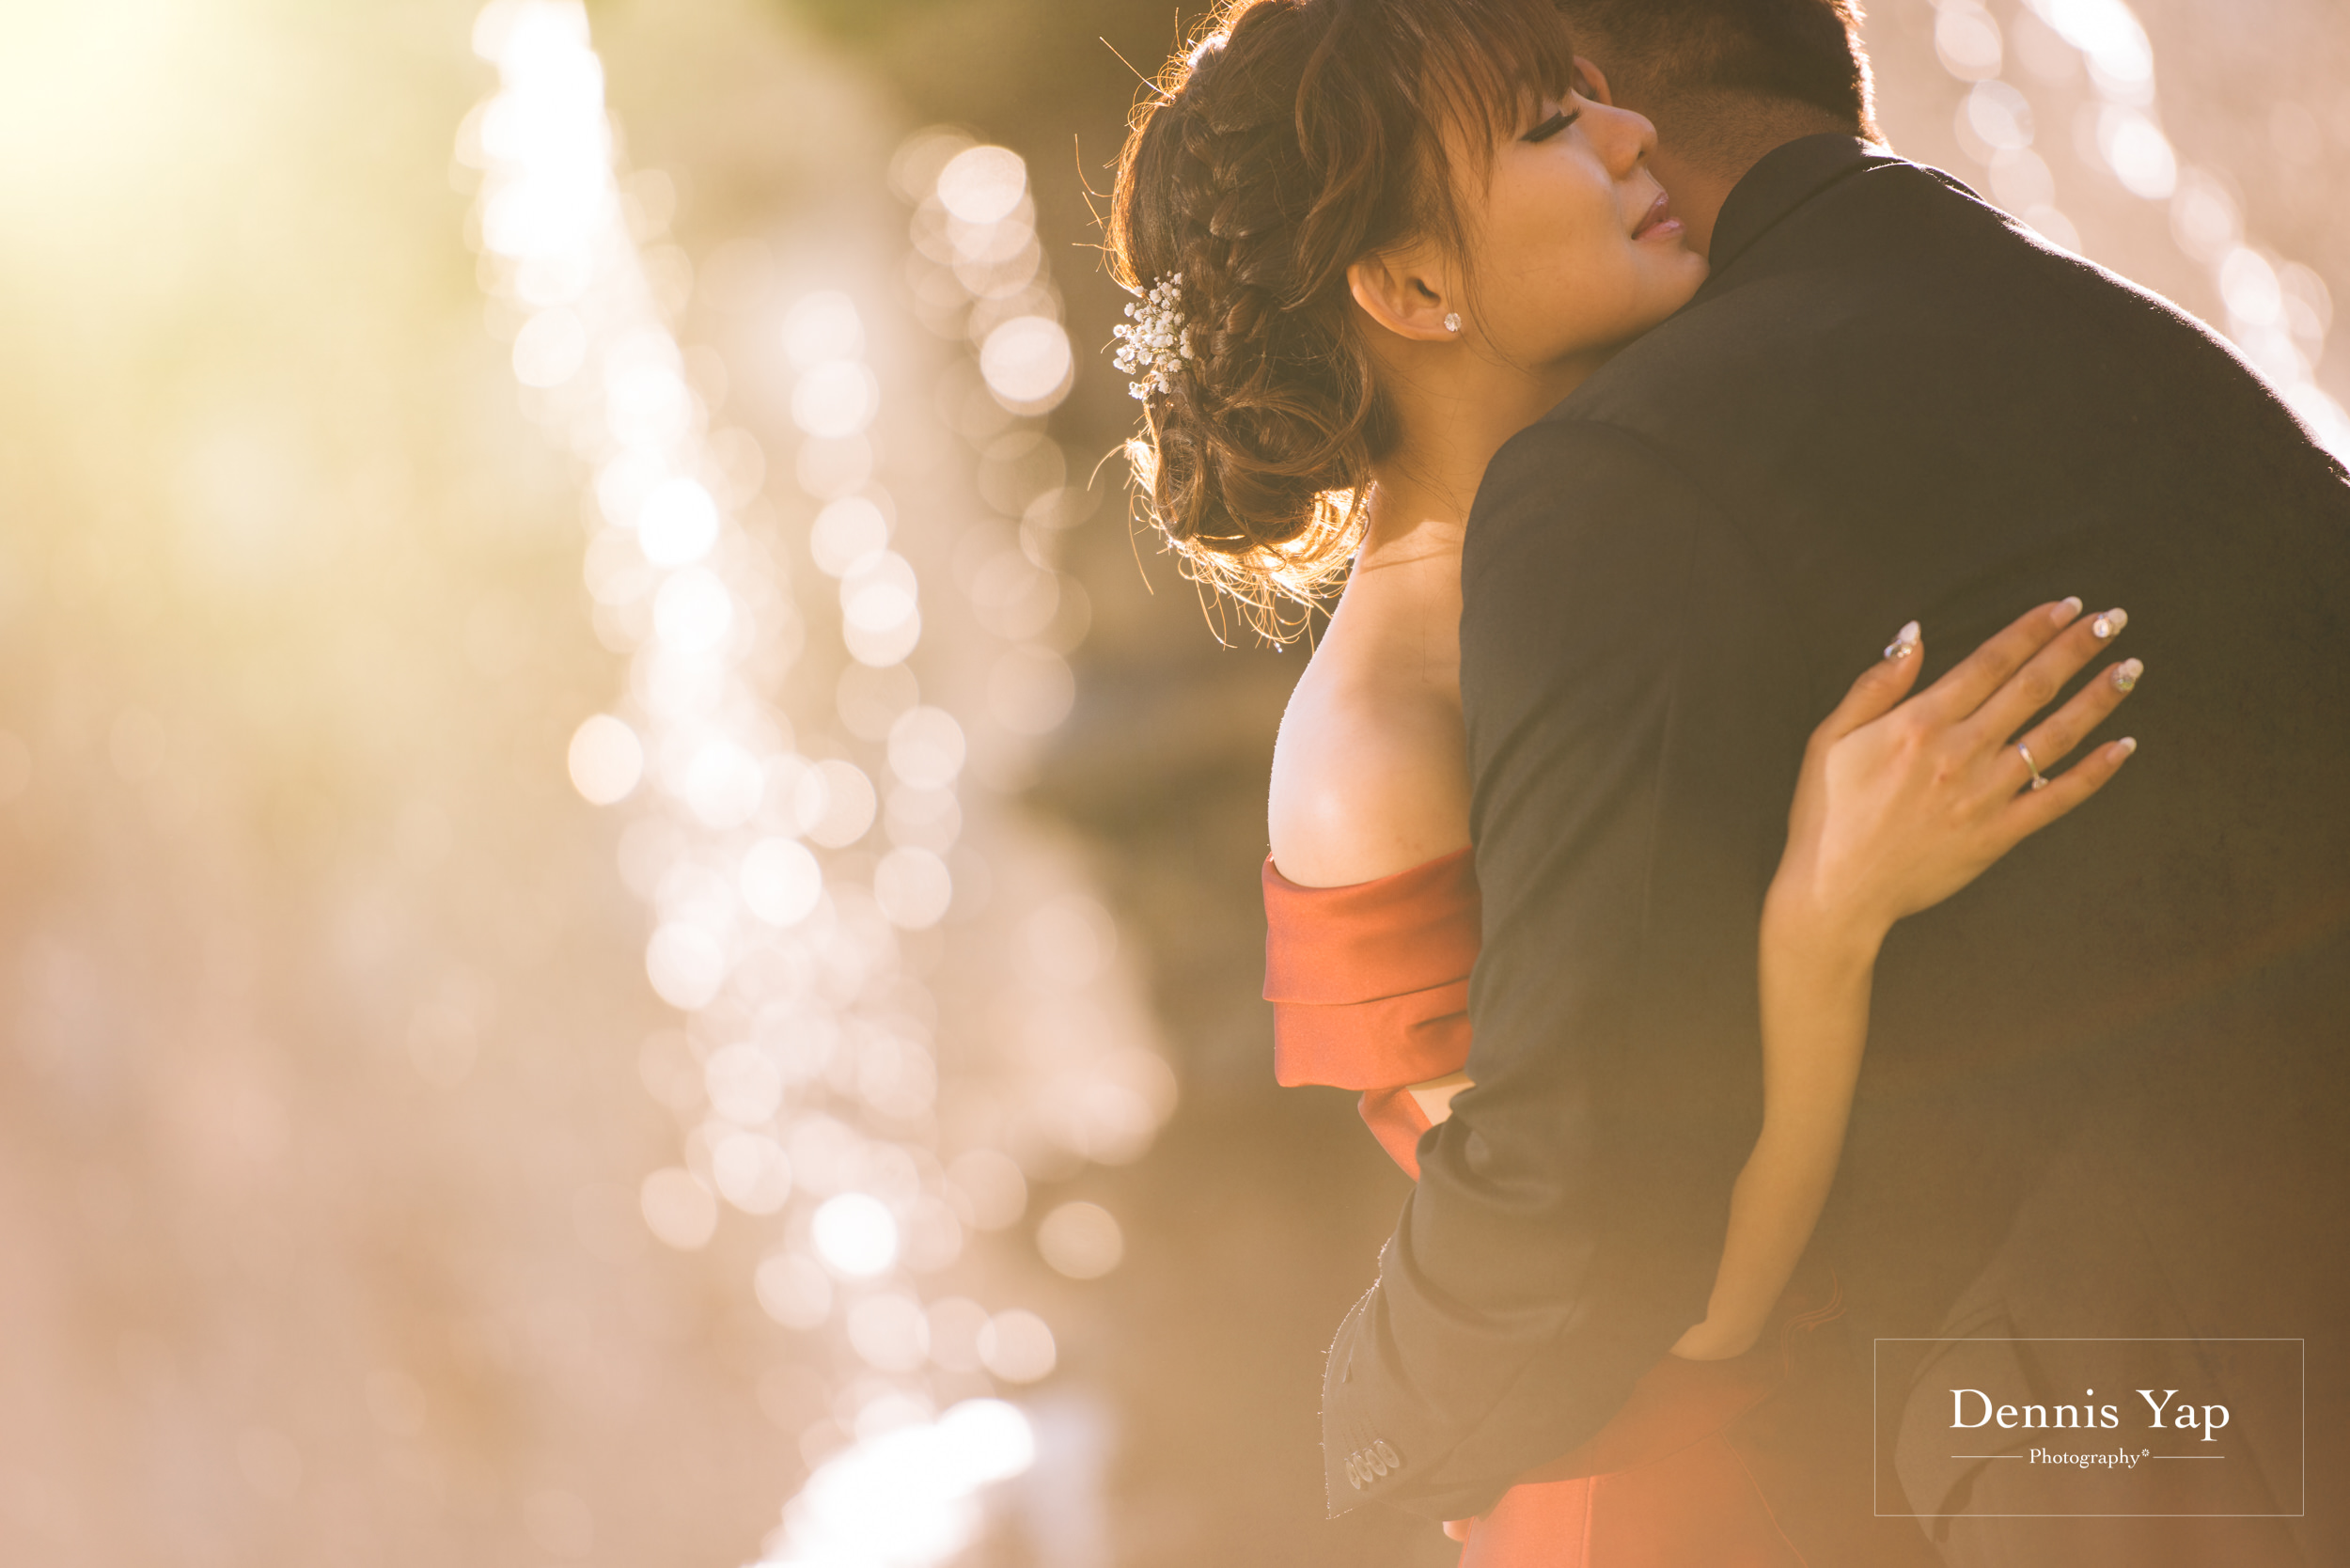 johnson joanne prewedding melbourne dennis yap photography fine art portrait paris dennis yap photography-3.jpg